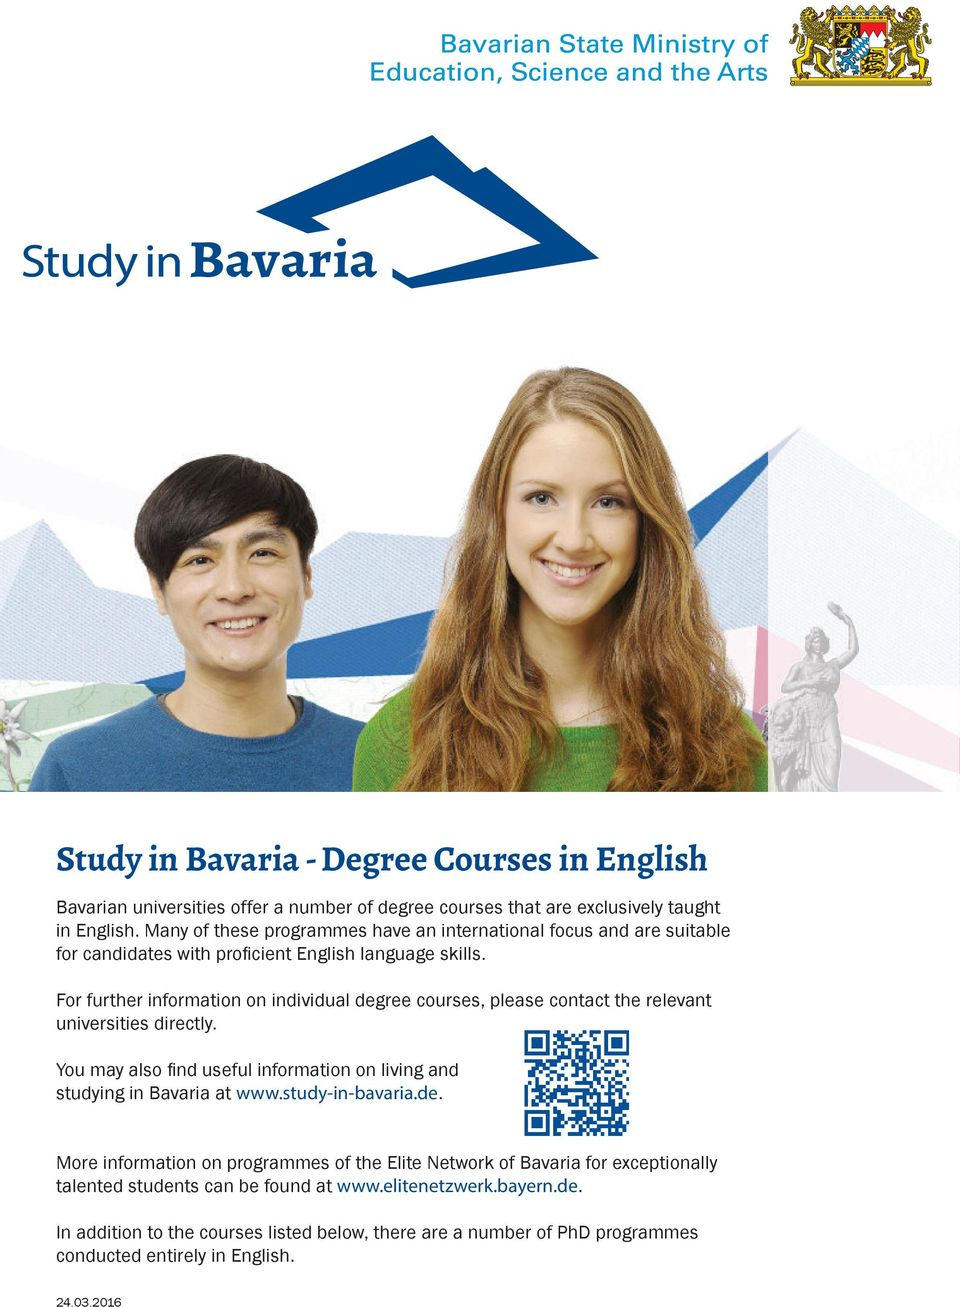 For further information on individual degree courses, please contact the relevant universities directly. You may also fi nd useful information on living and studying in Bavaria at www.